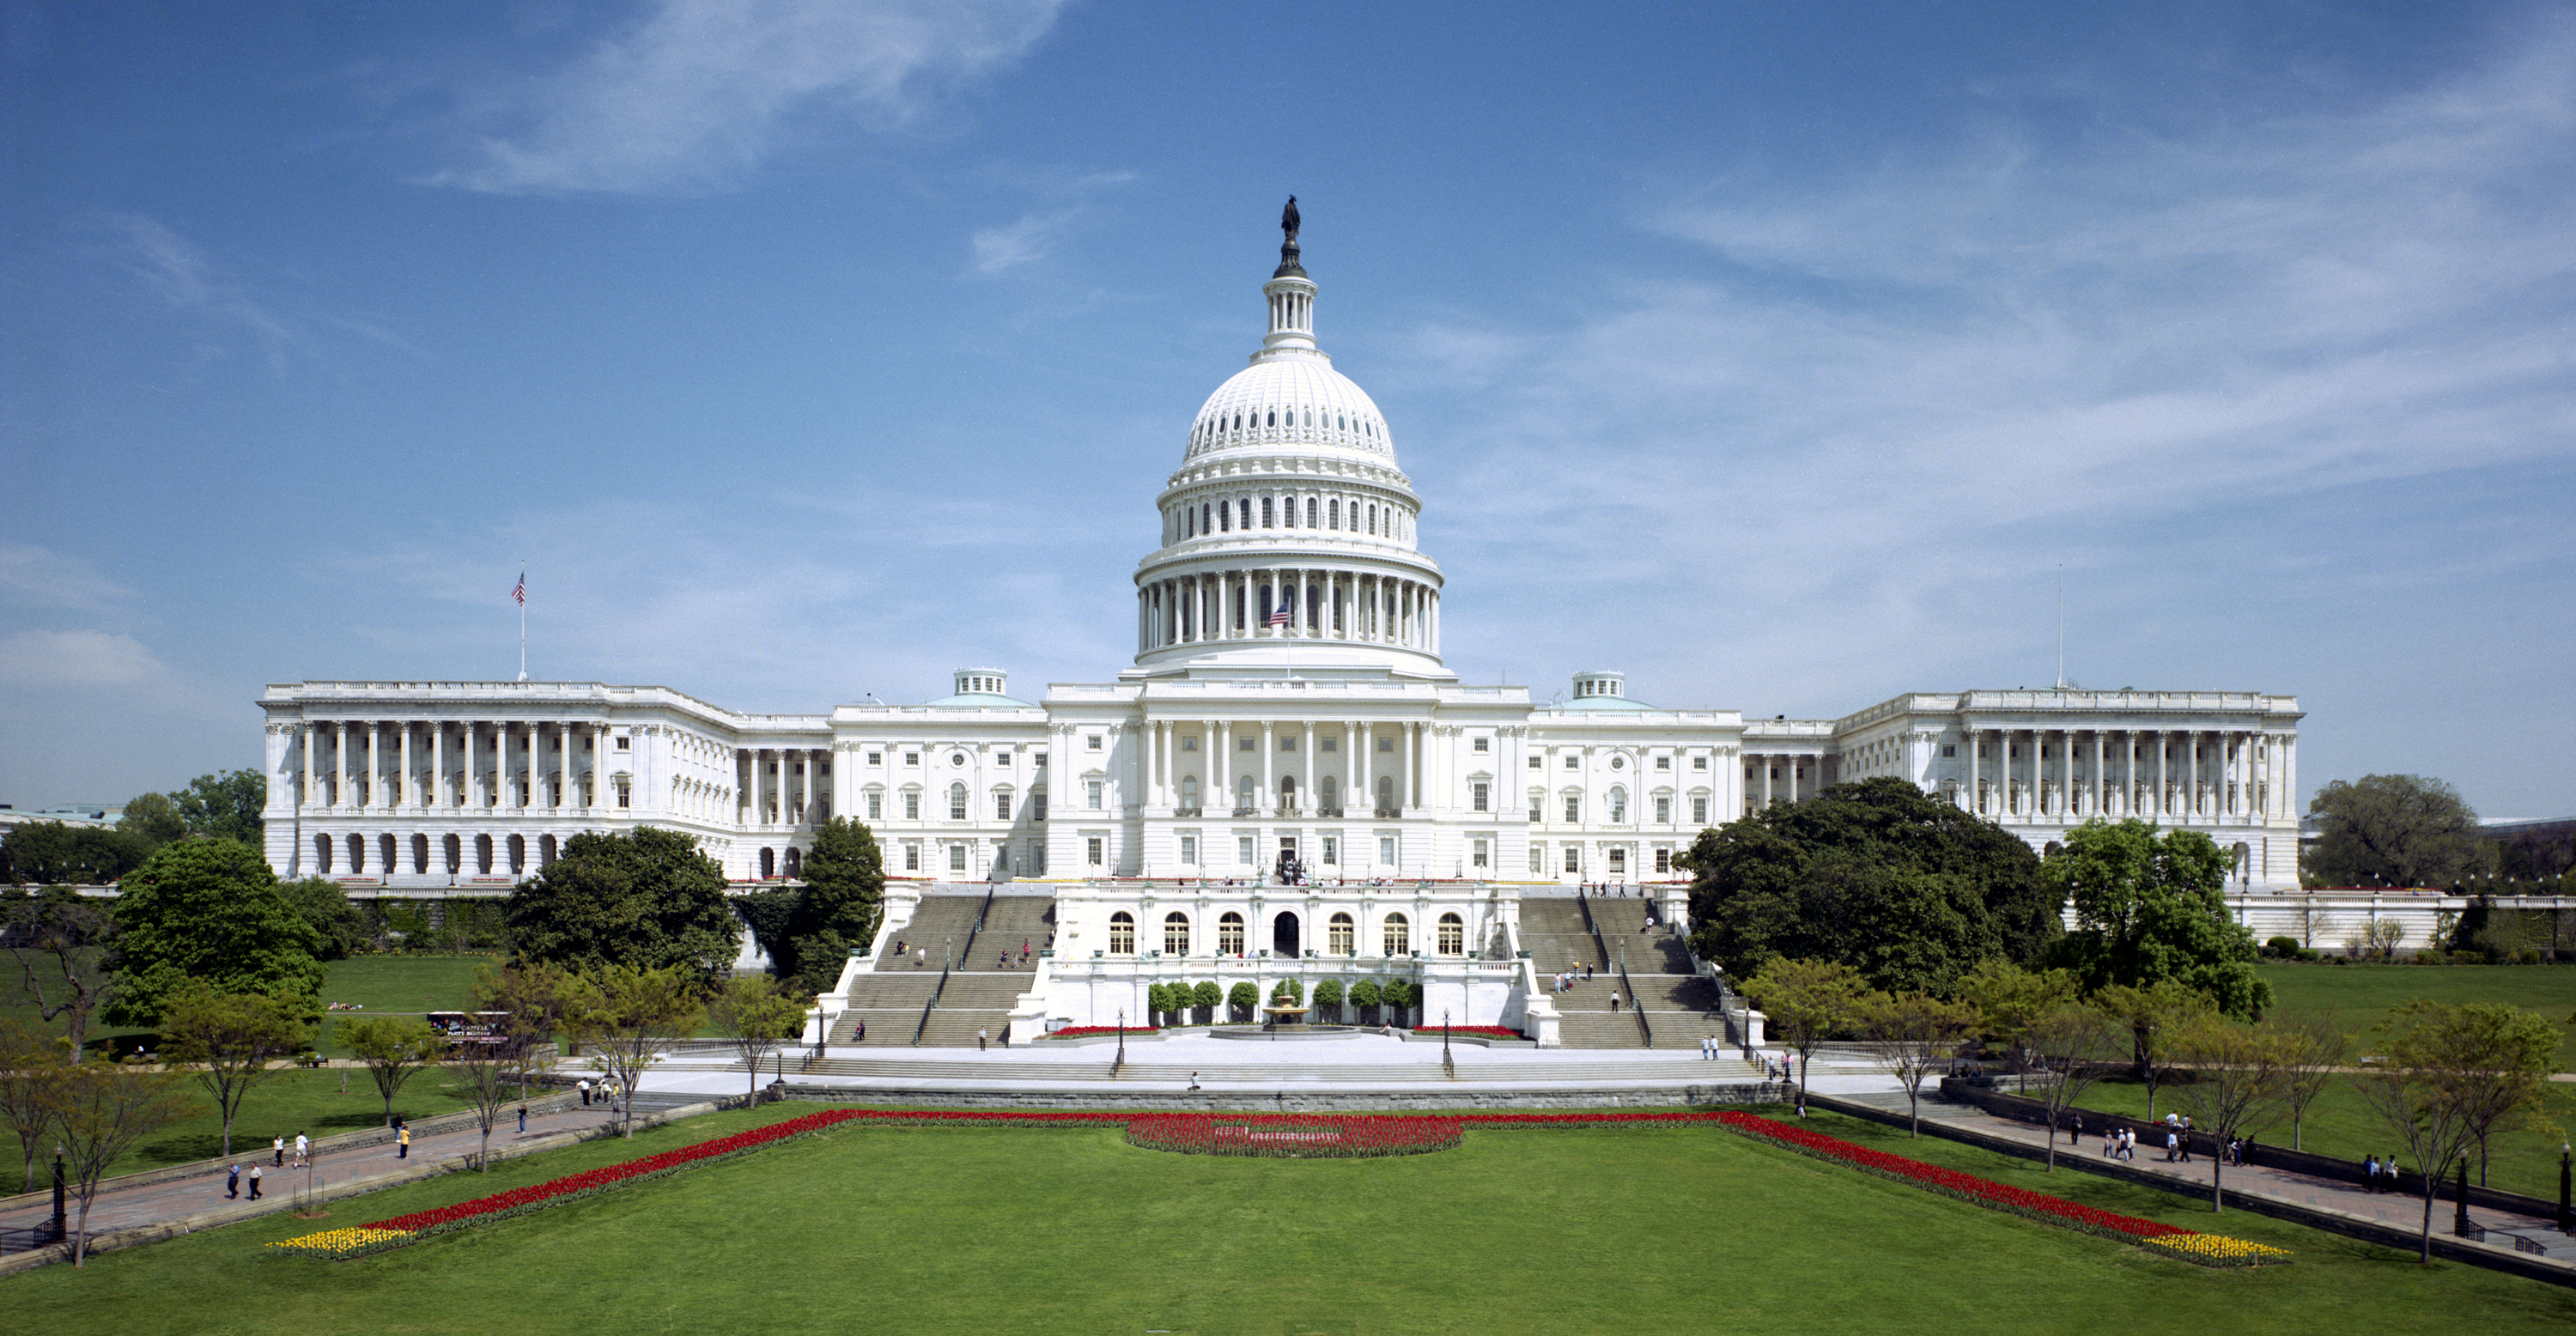 There are many houses of government that resemble the U.S. Capitol Building in Washington, DC, USA